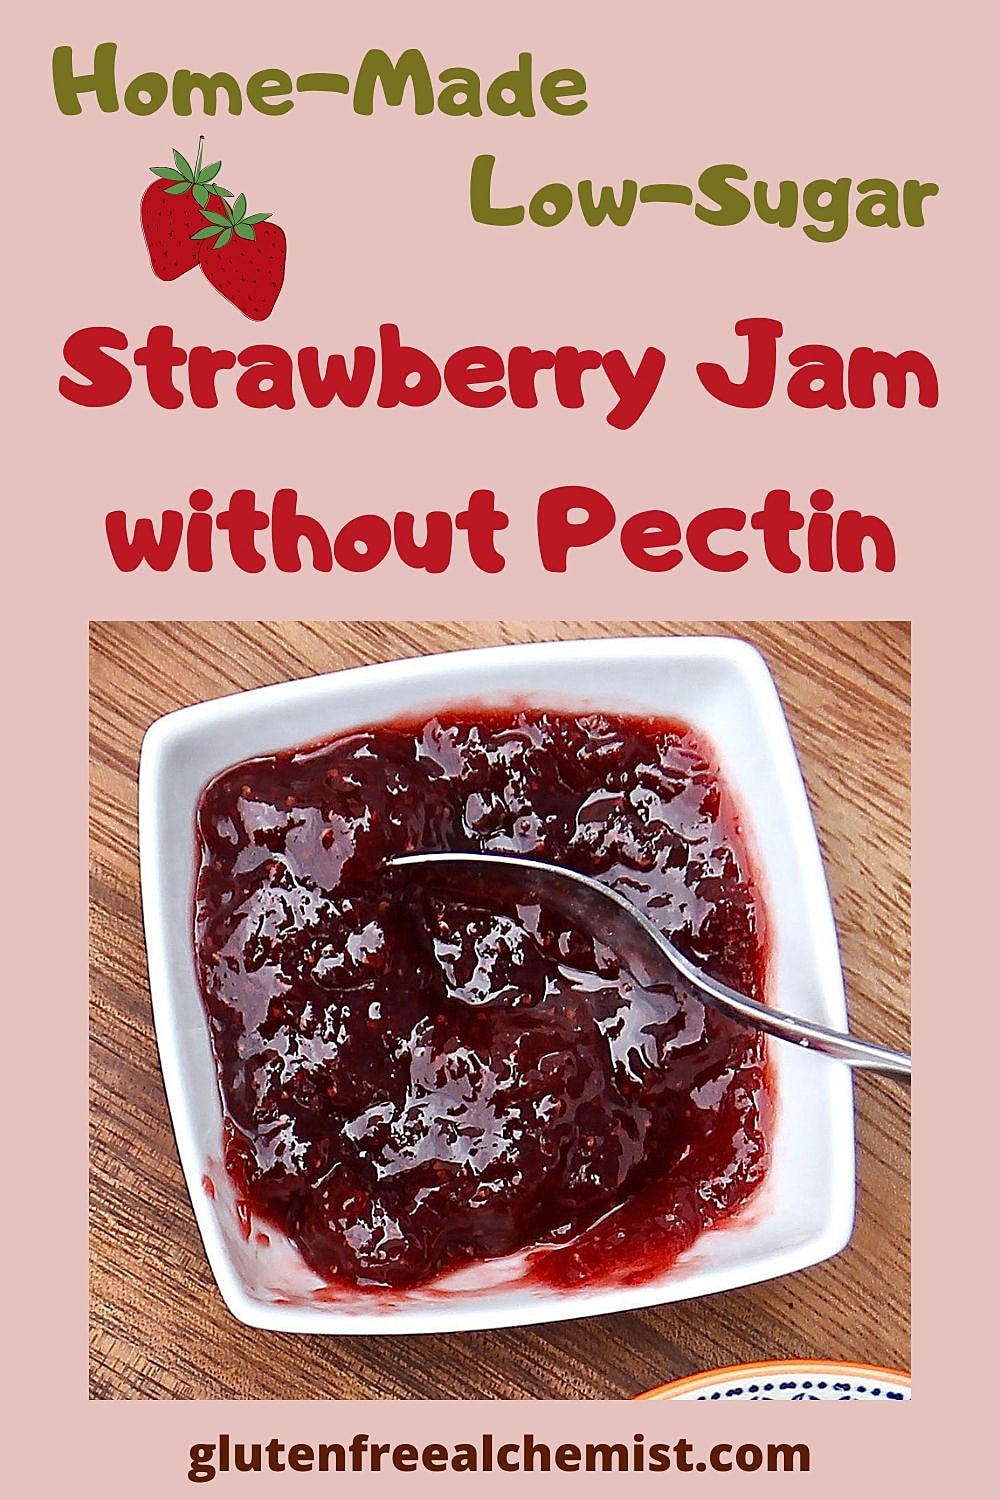 Low Sugar Strawberry Jam without Pectin - An Easy Recipe